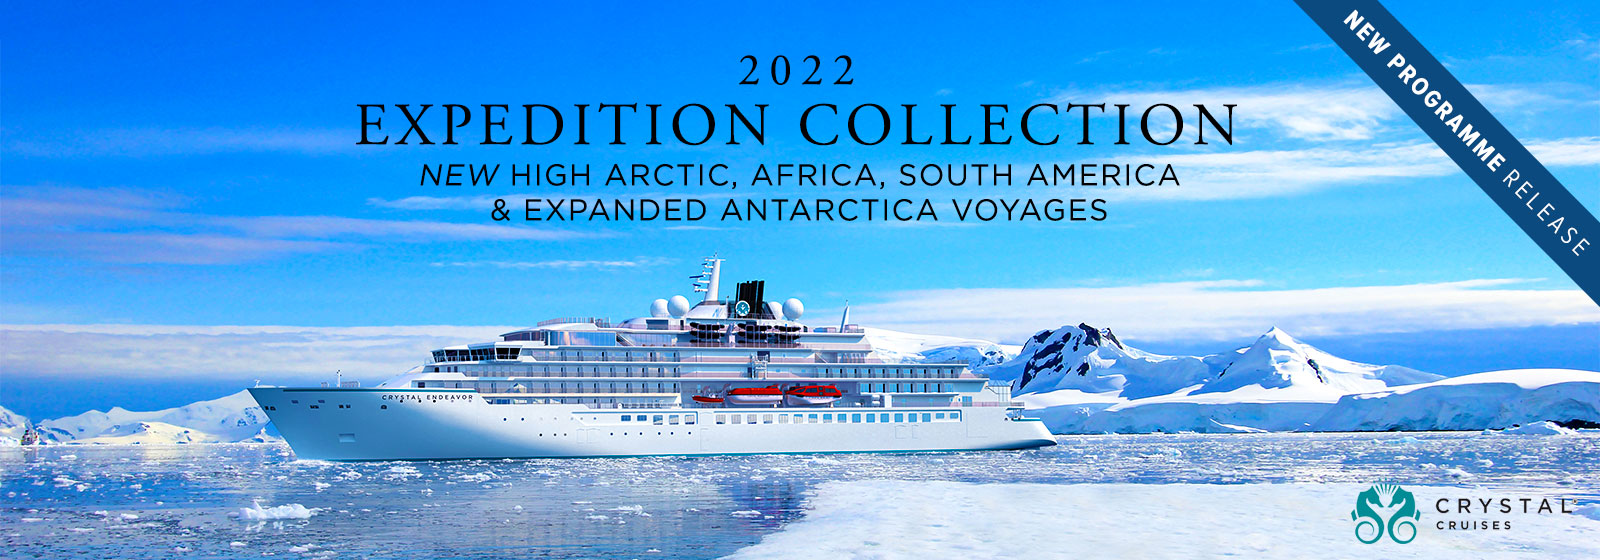 Crystal - 2022 Expedition Collection1